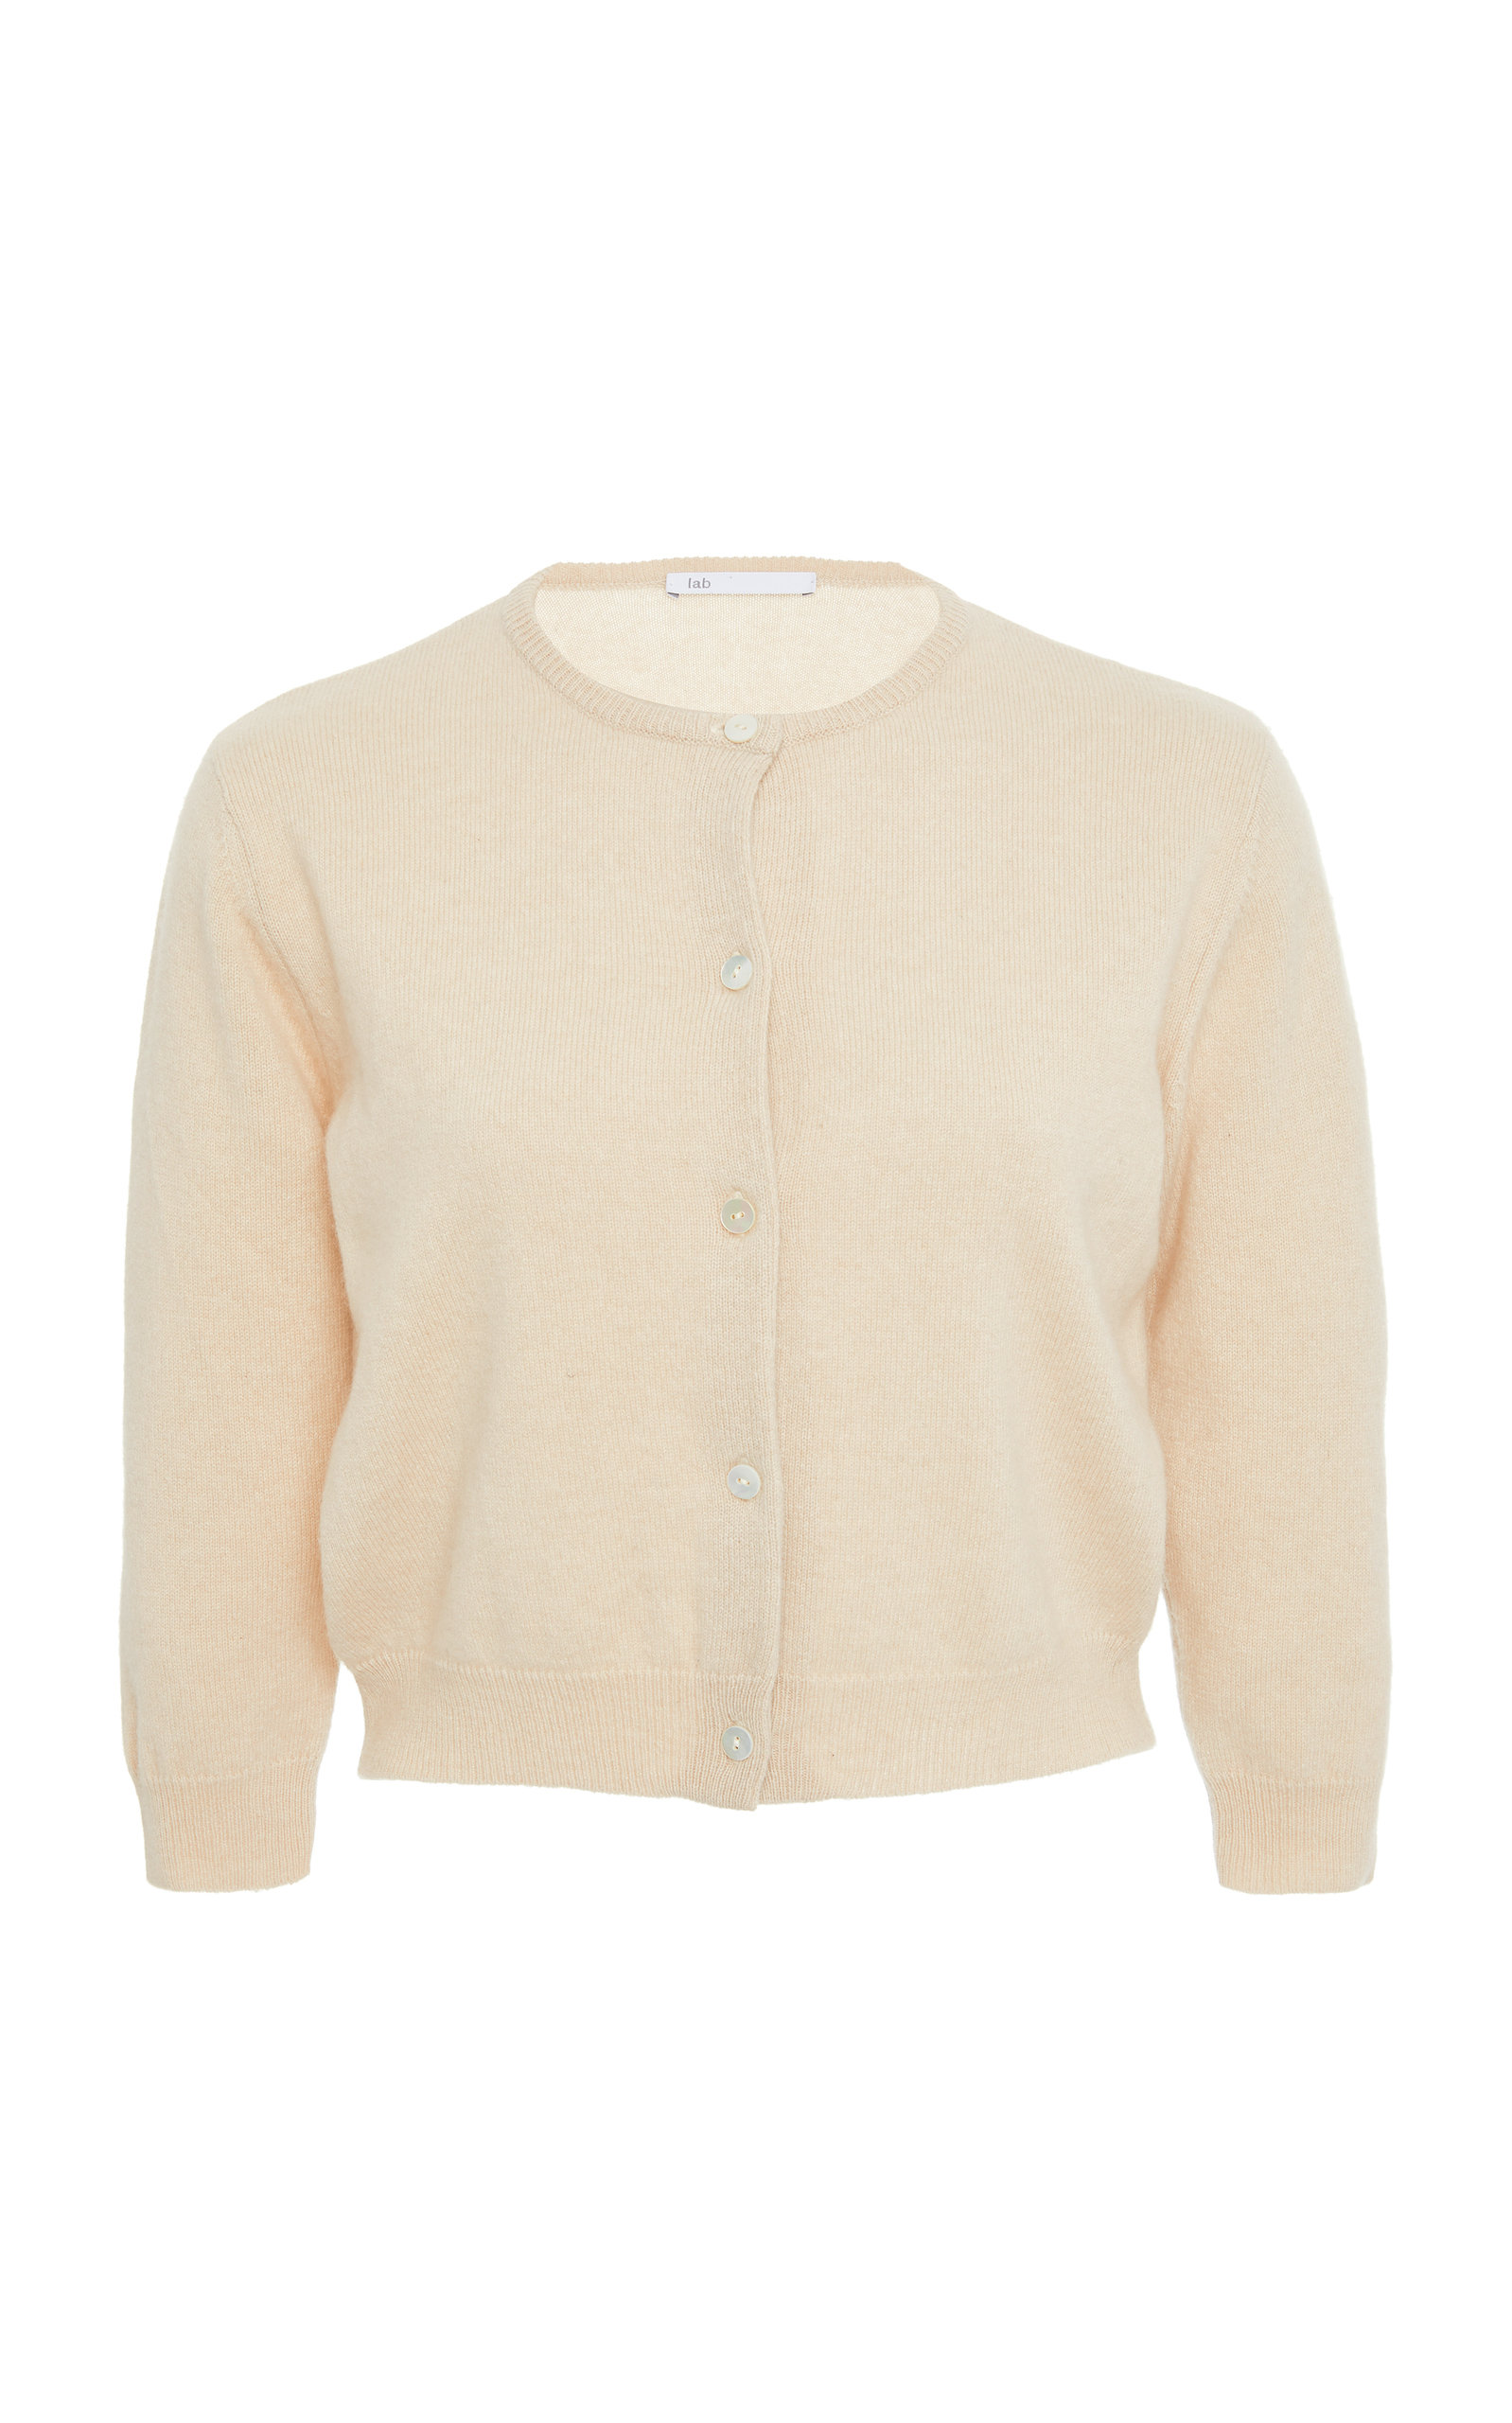 284f1ccb89 Cropped Cashmere Cardigan by lab